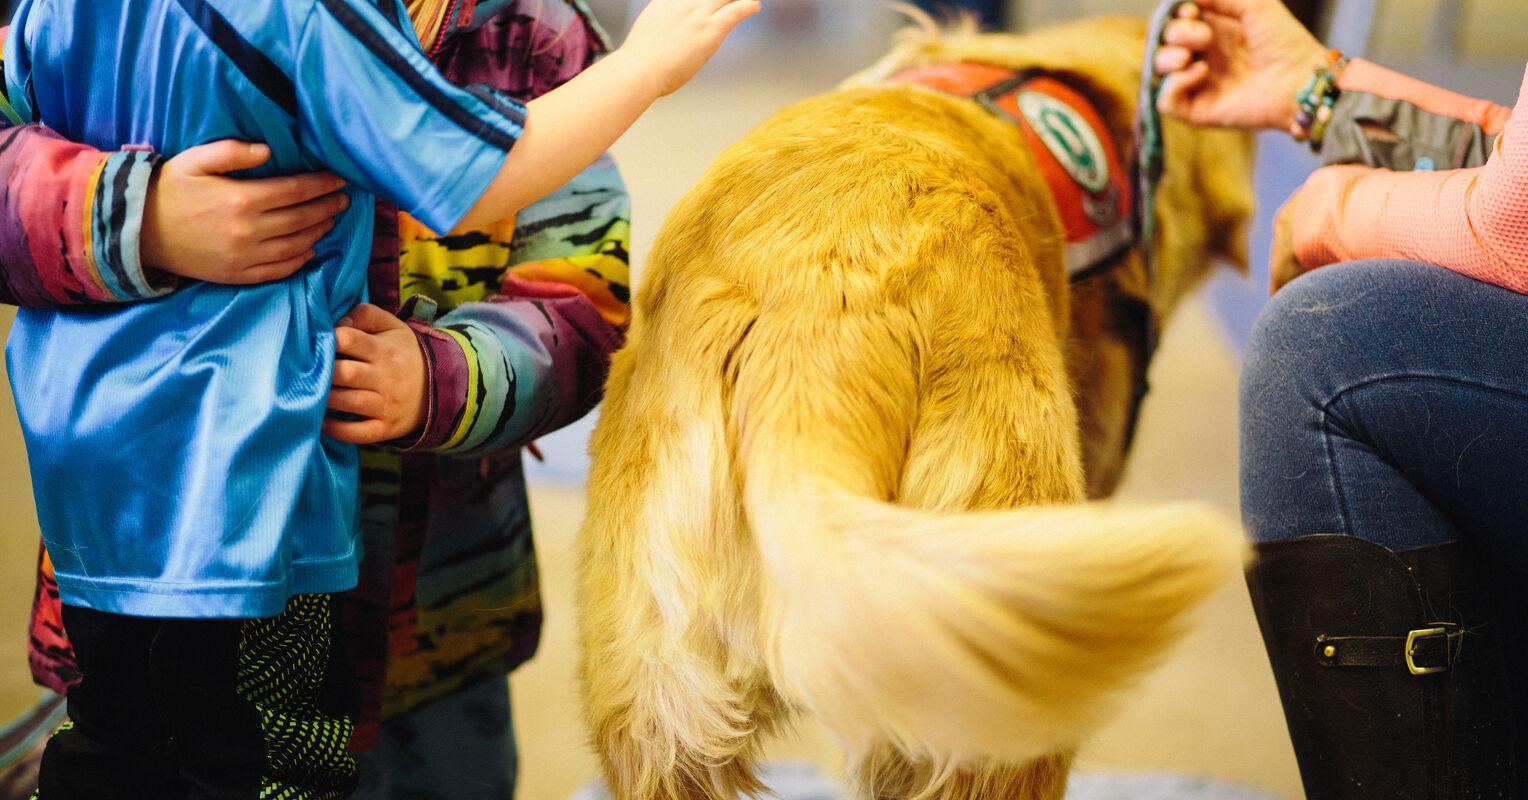 A Kid's Guide to Meeting a New Dog